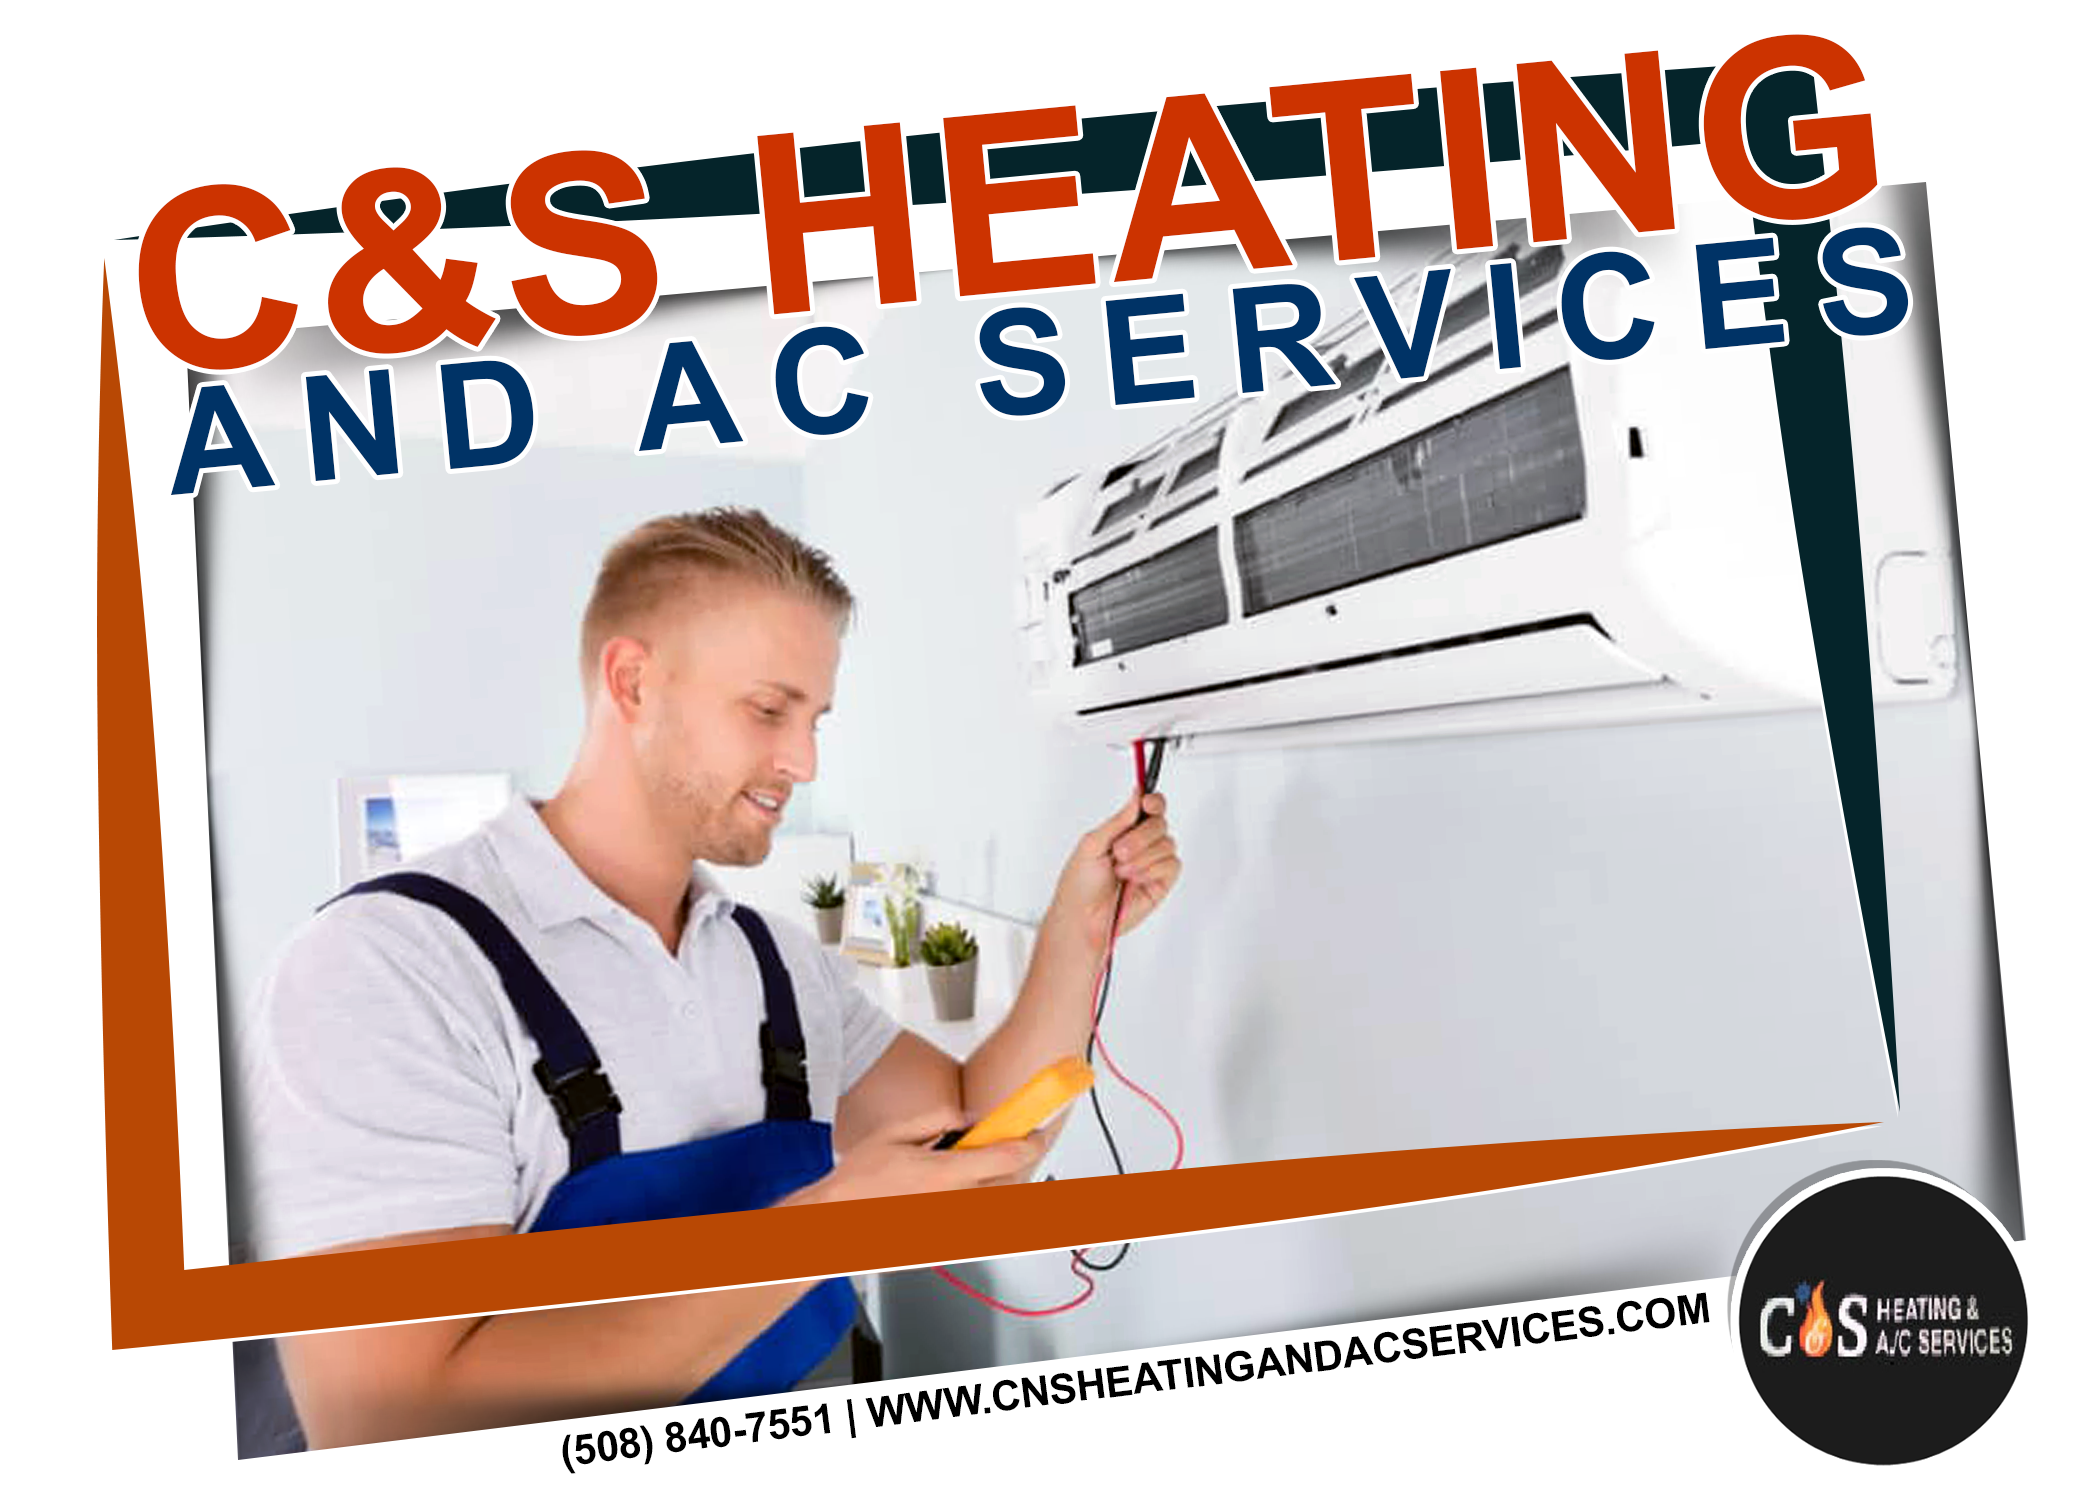 C S Heating And Ac Services Is Your Ideal Choice For A